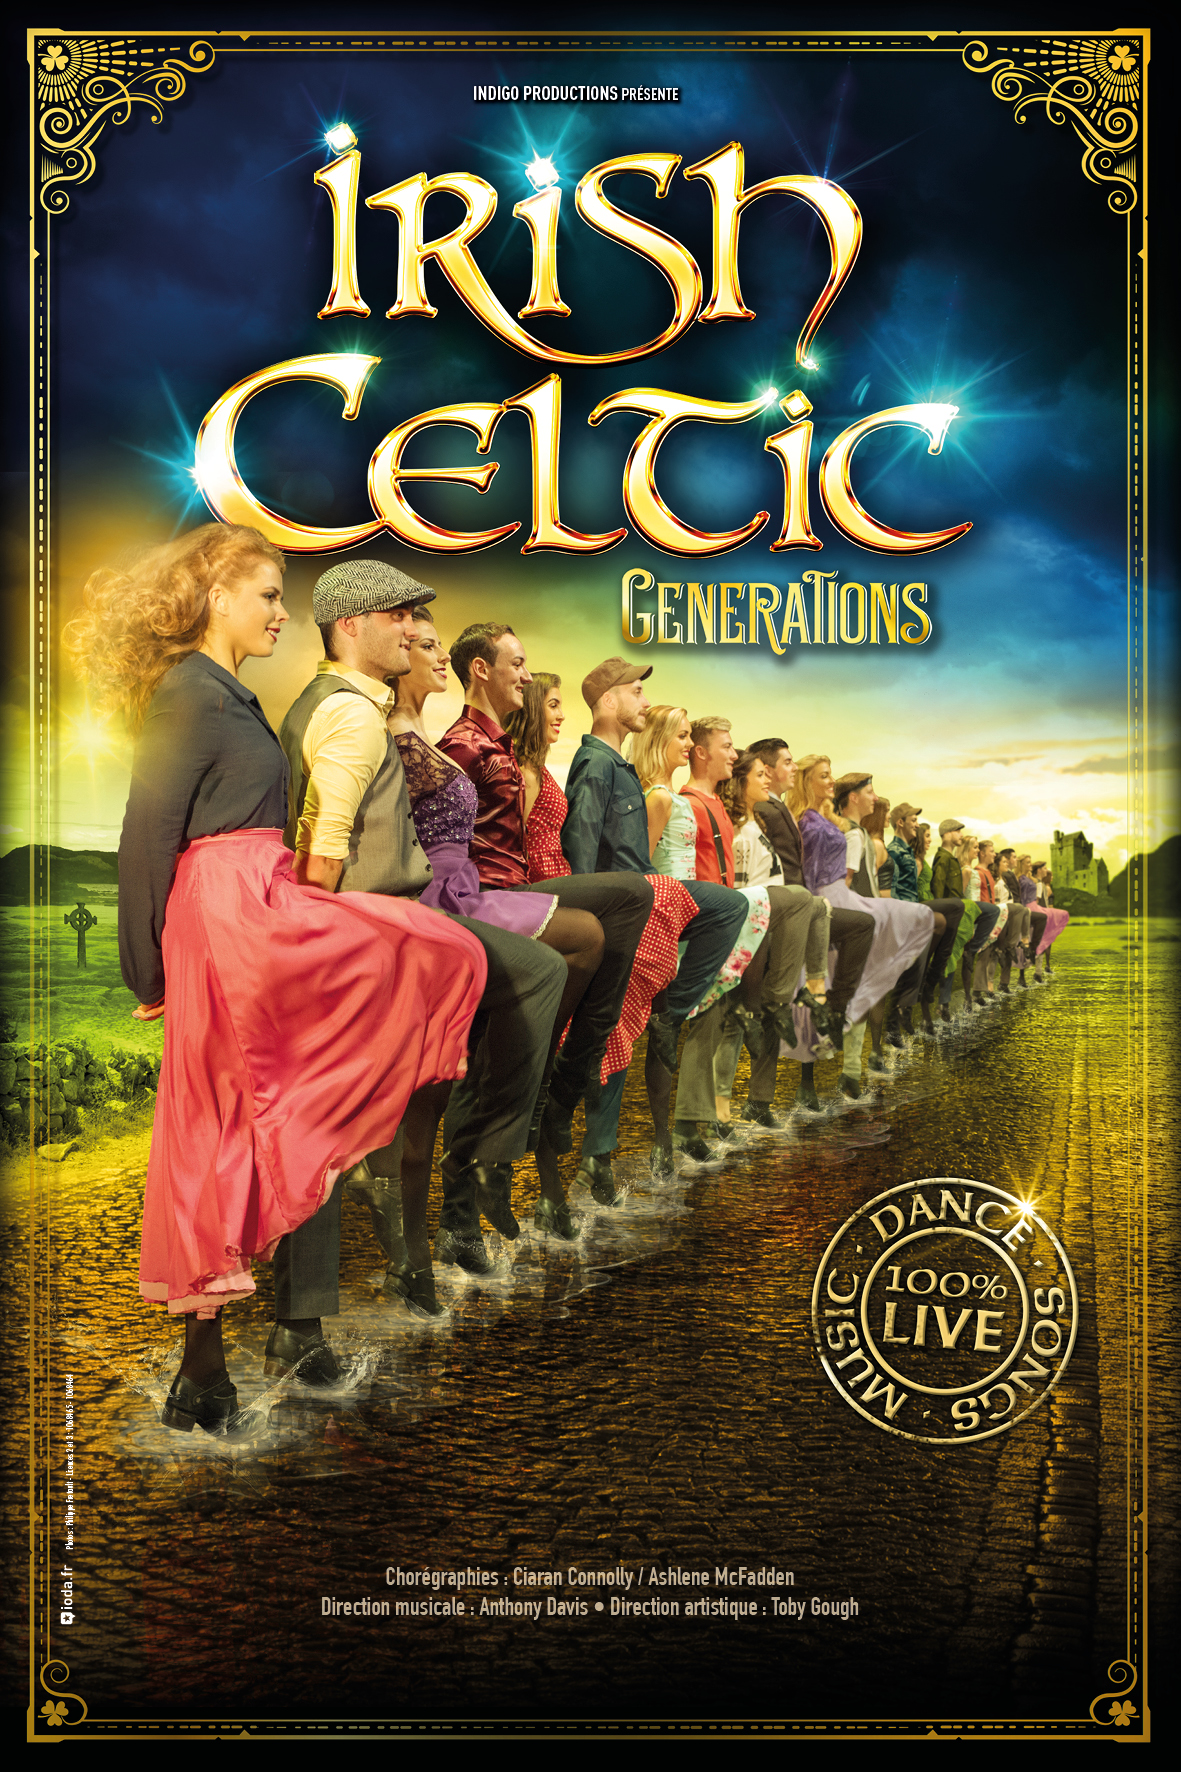 IRISH CELTIC GENERATION